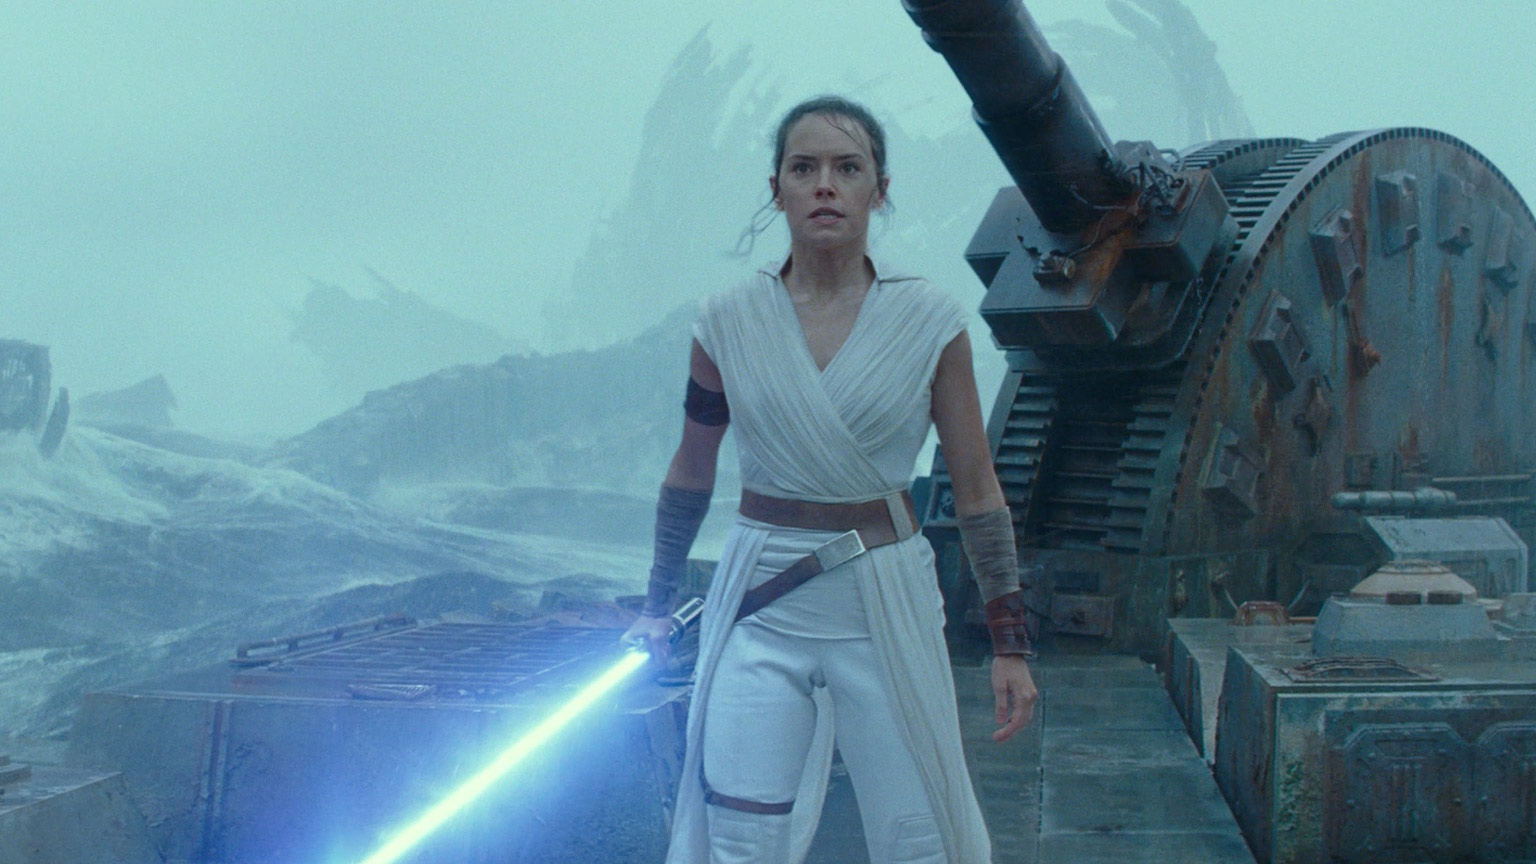 Star Wars: The Rise of Skywalker Disney Plus release date finally announced  | Tom's Guide